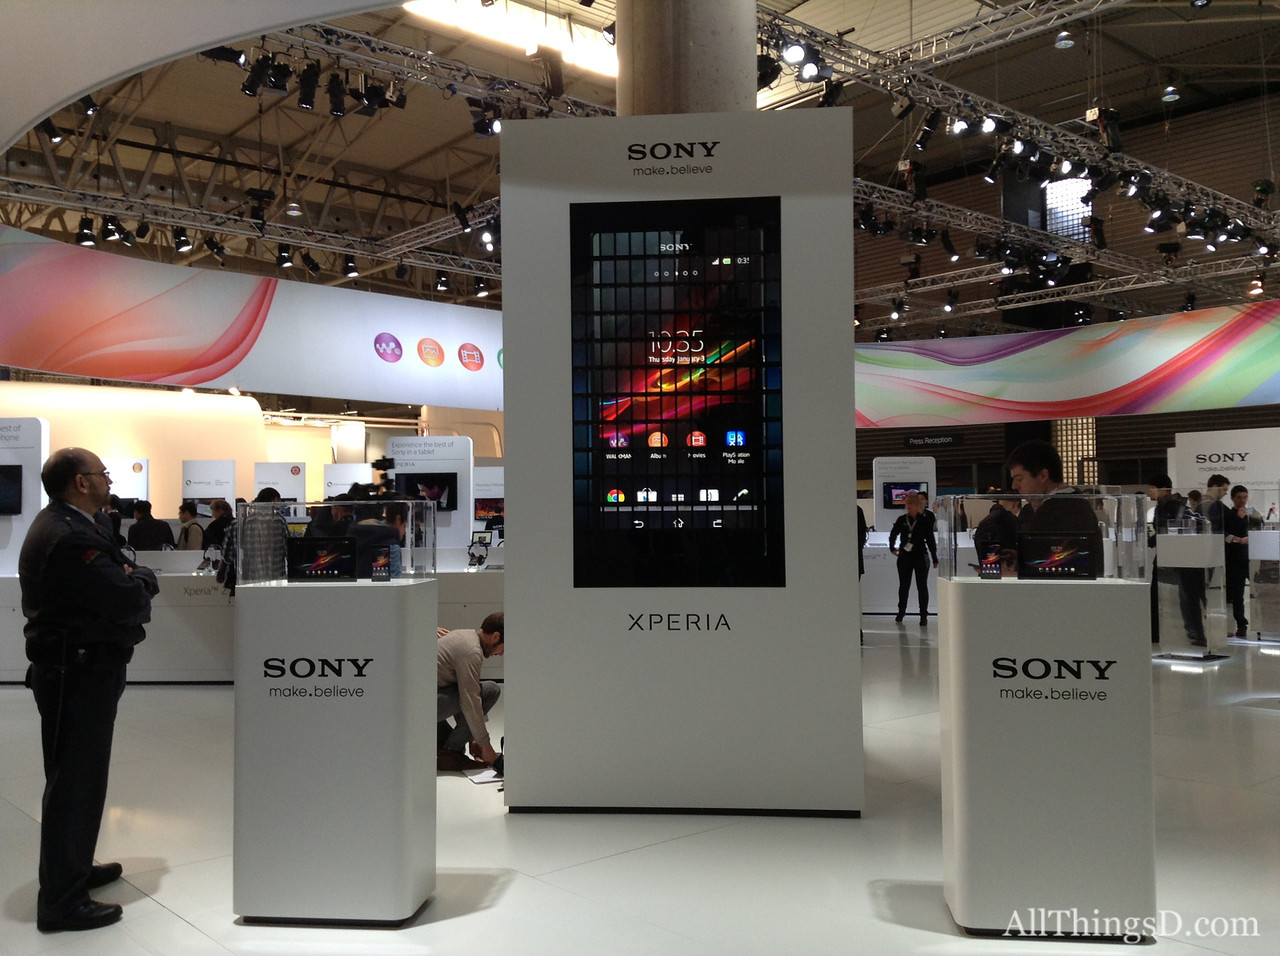 Sony's booth at Mobile World Congress 2013.